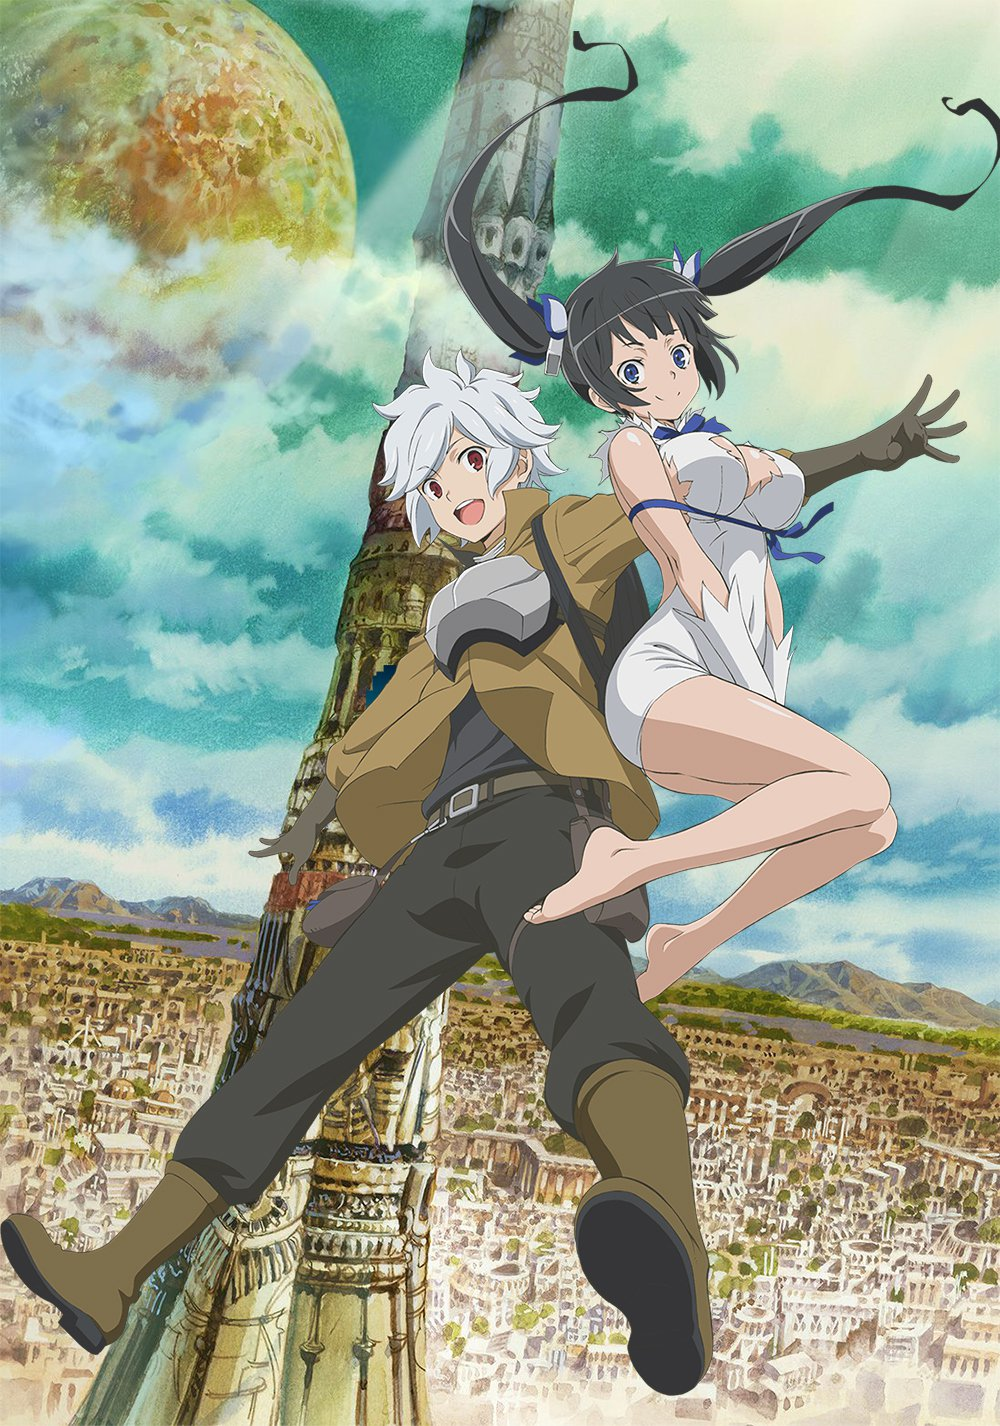 [Video] 'Is it Wrong to Pick Up Girls in a Dungeon?'s 2nd PV streamed